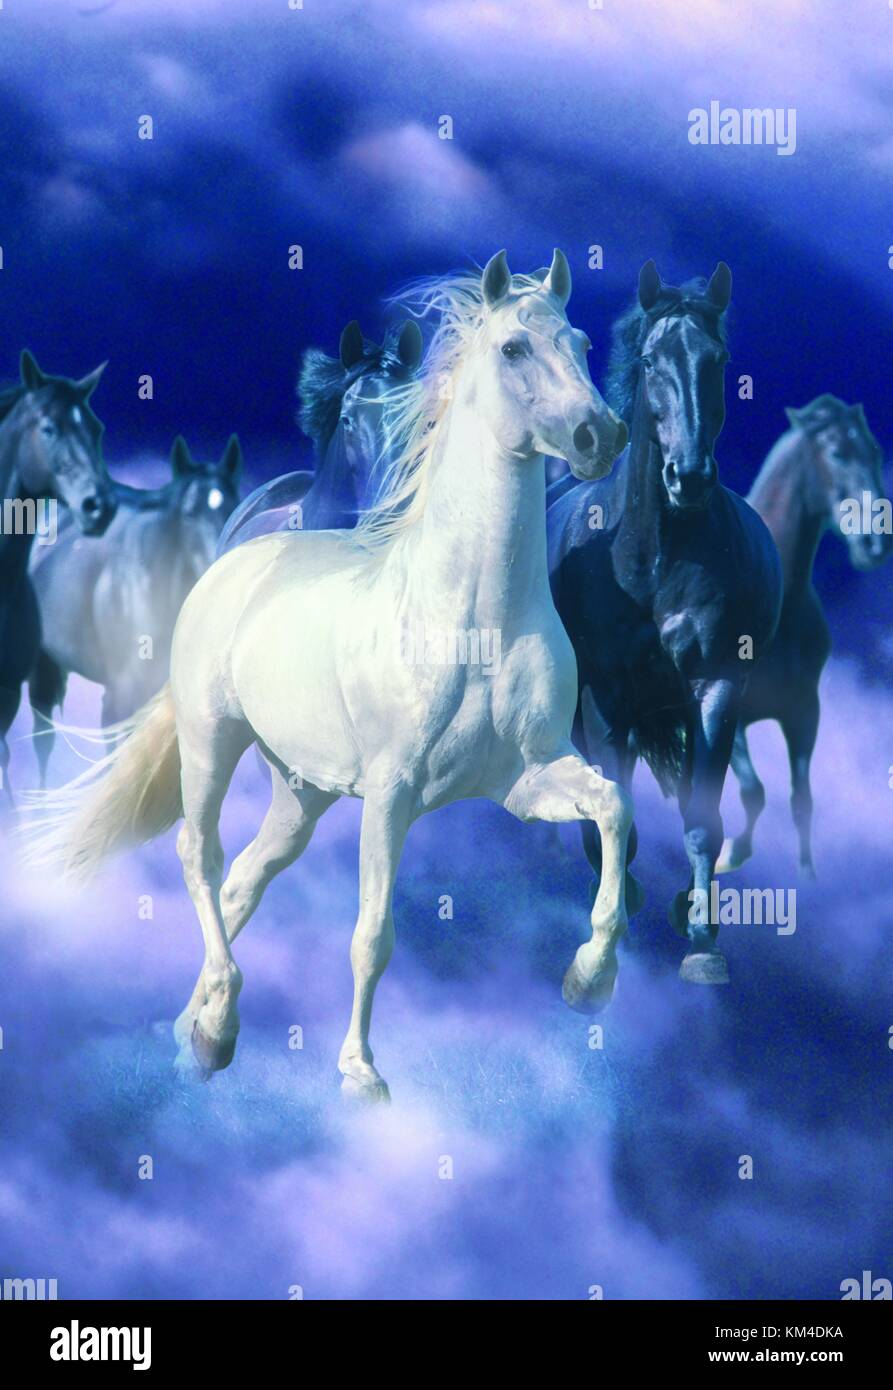 A White Horse And Four Black Horses Running Through Clouds Stock